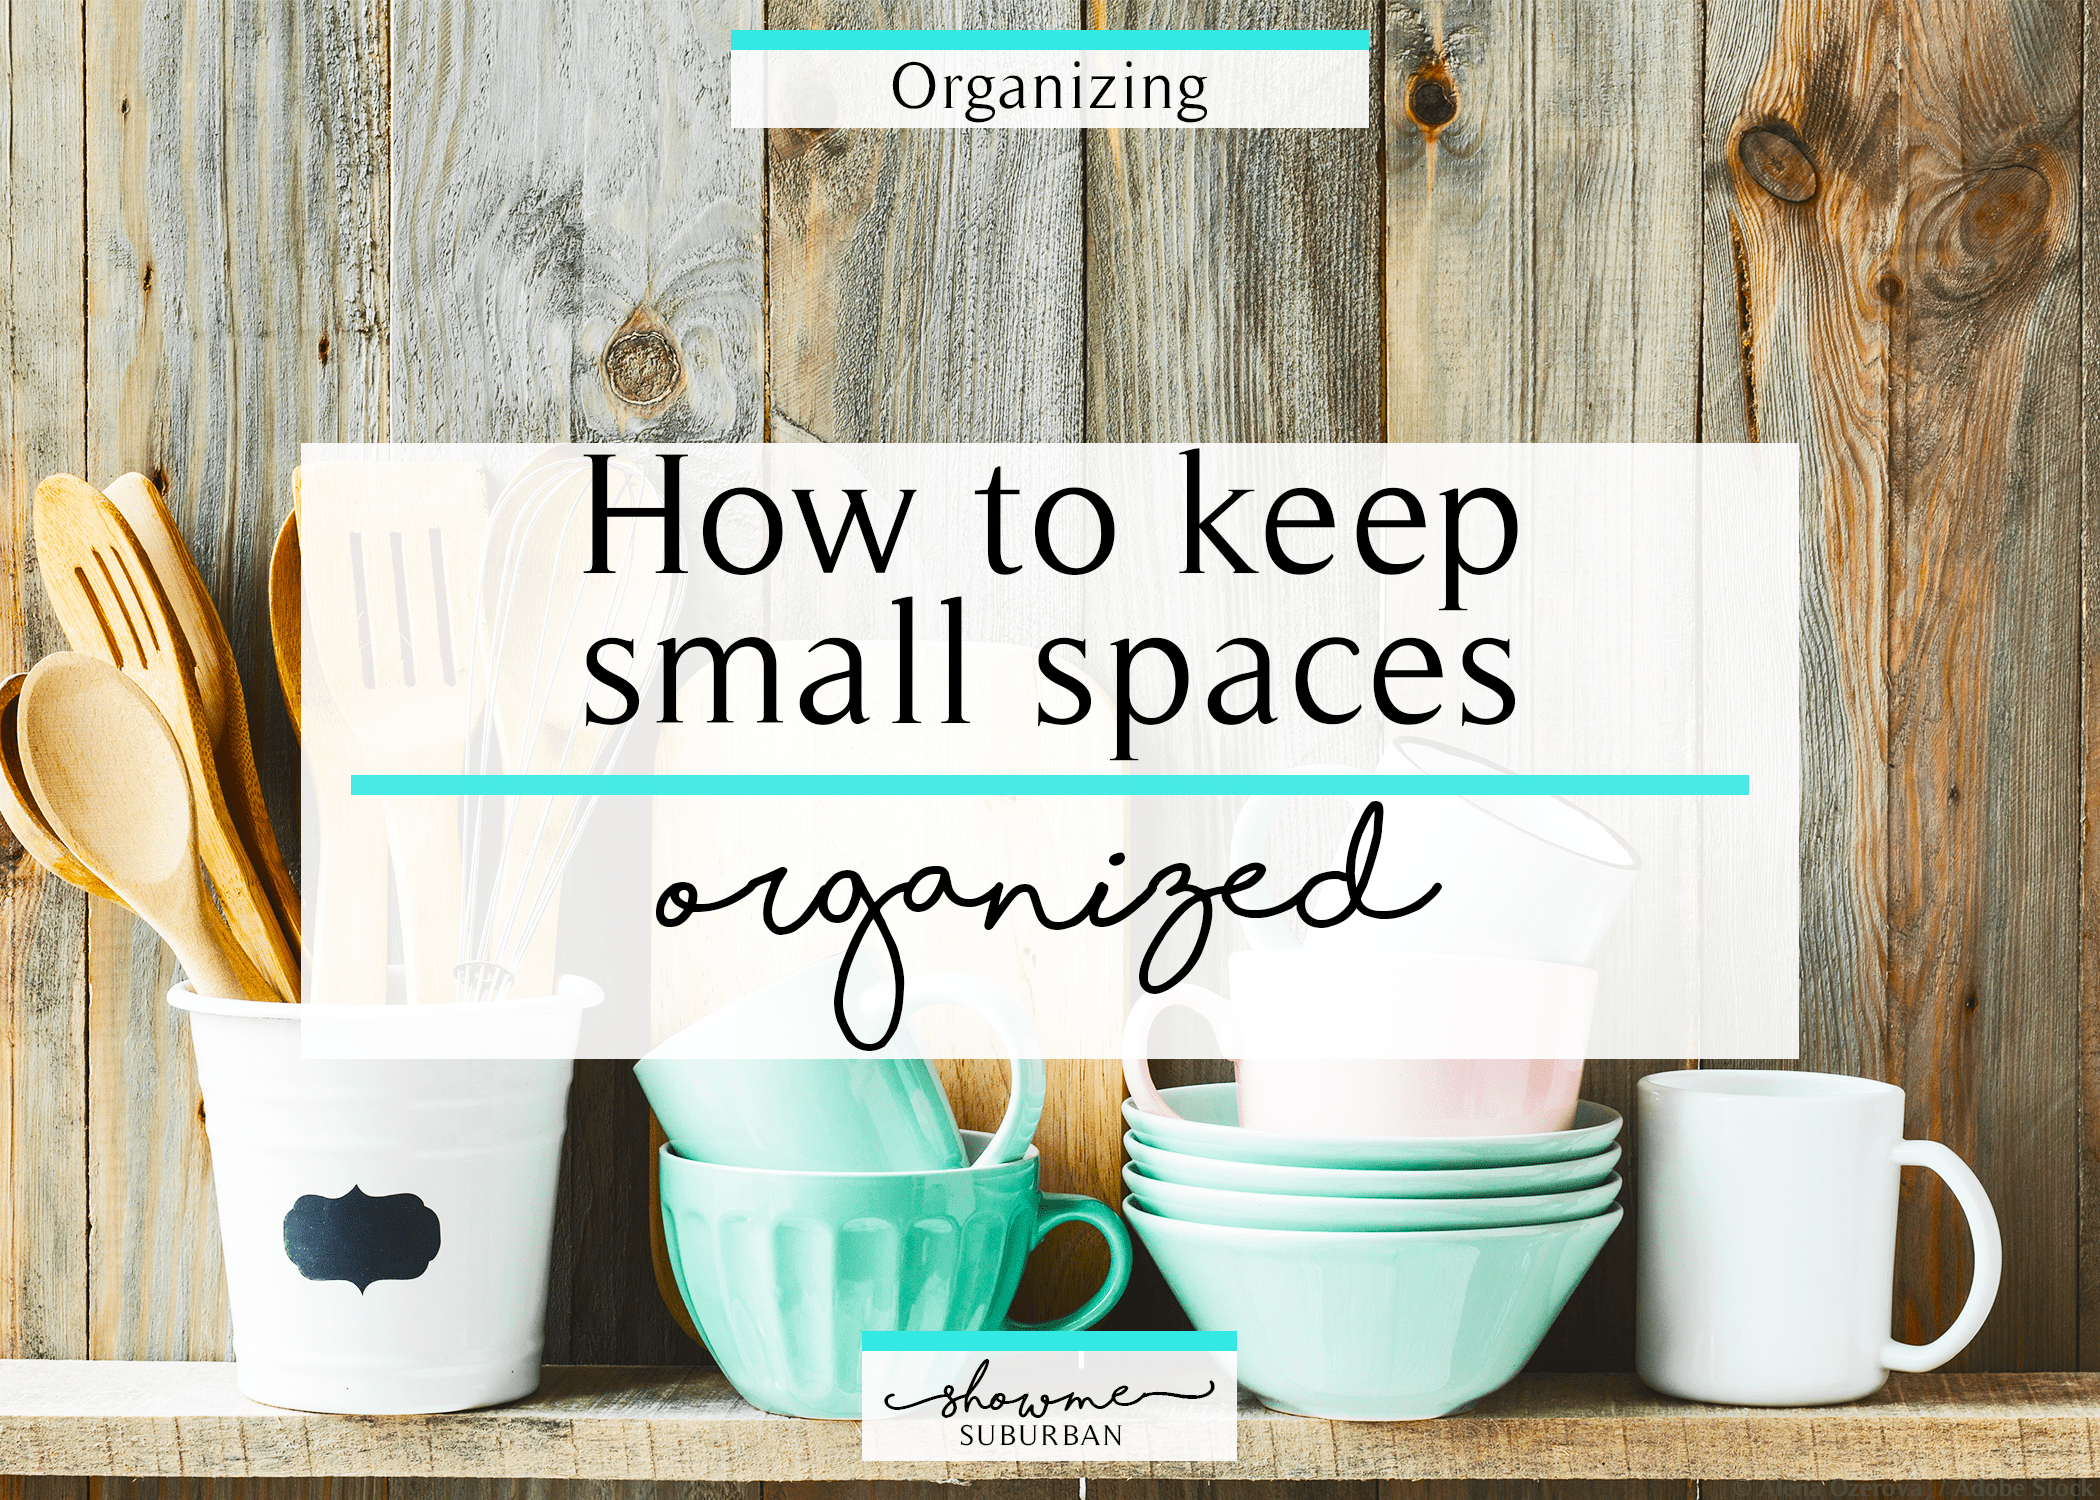 Have a closet, drawer, or cabinet in your home that's always disorganized? Learn how to get and keep small spaces organized in just a few steps. These easy tips are great for organizing the closet, bathroom, or kitchen.